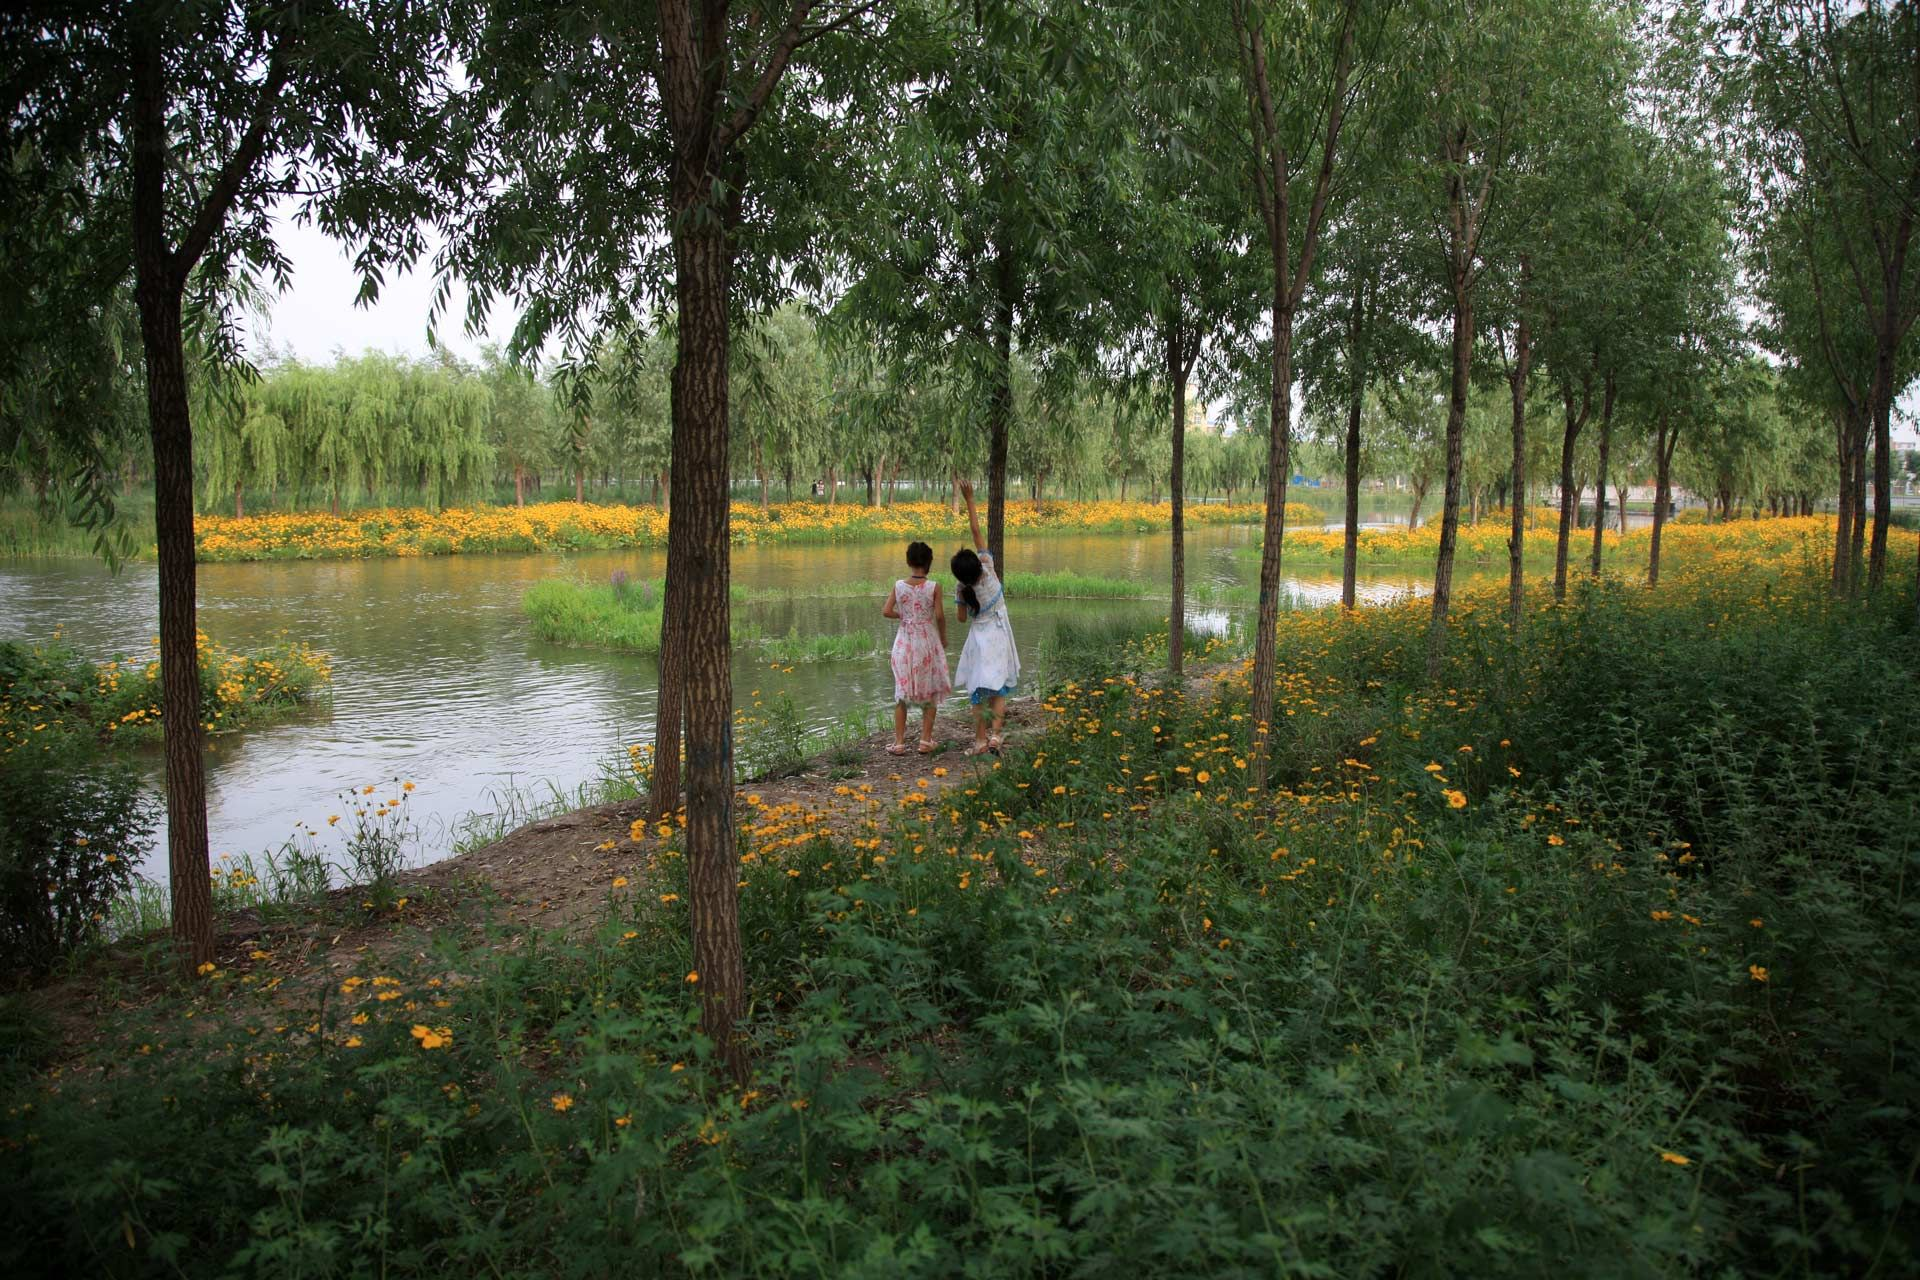 Qianan Sanlihe River Ecological Corridor In Qianan City (China) By